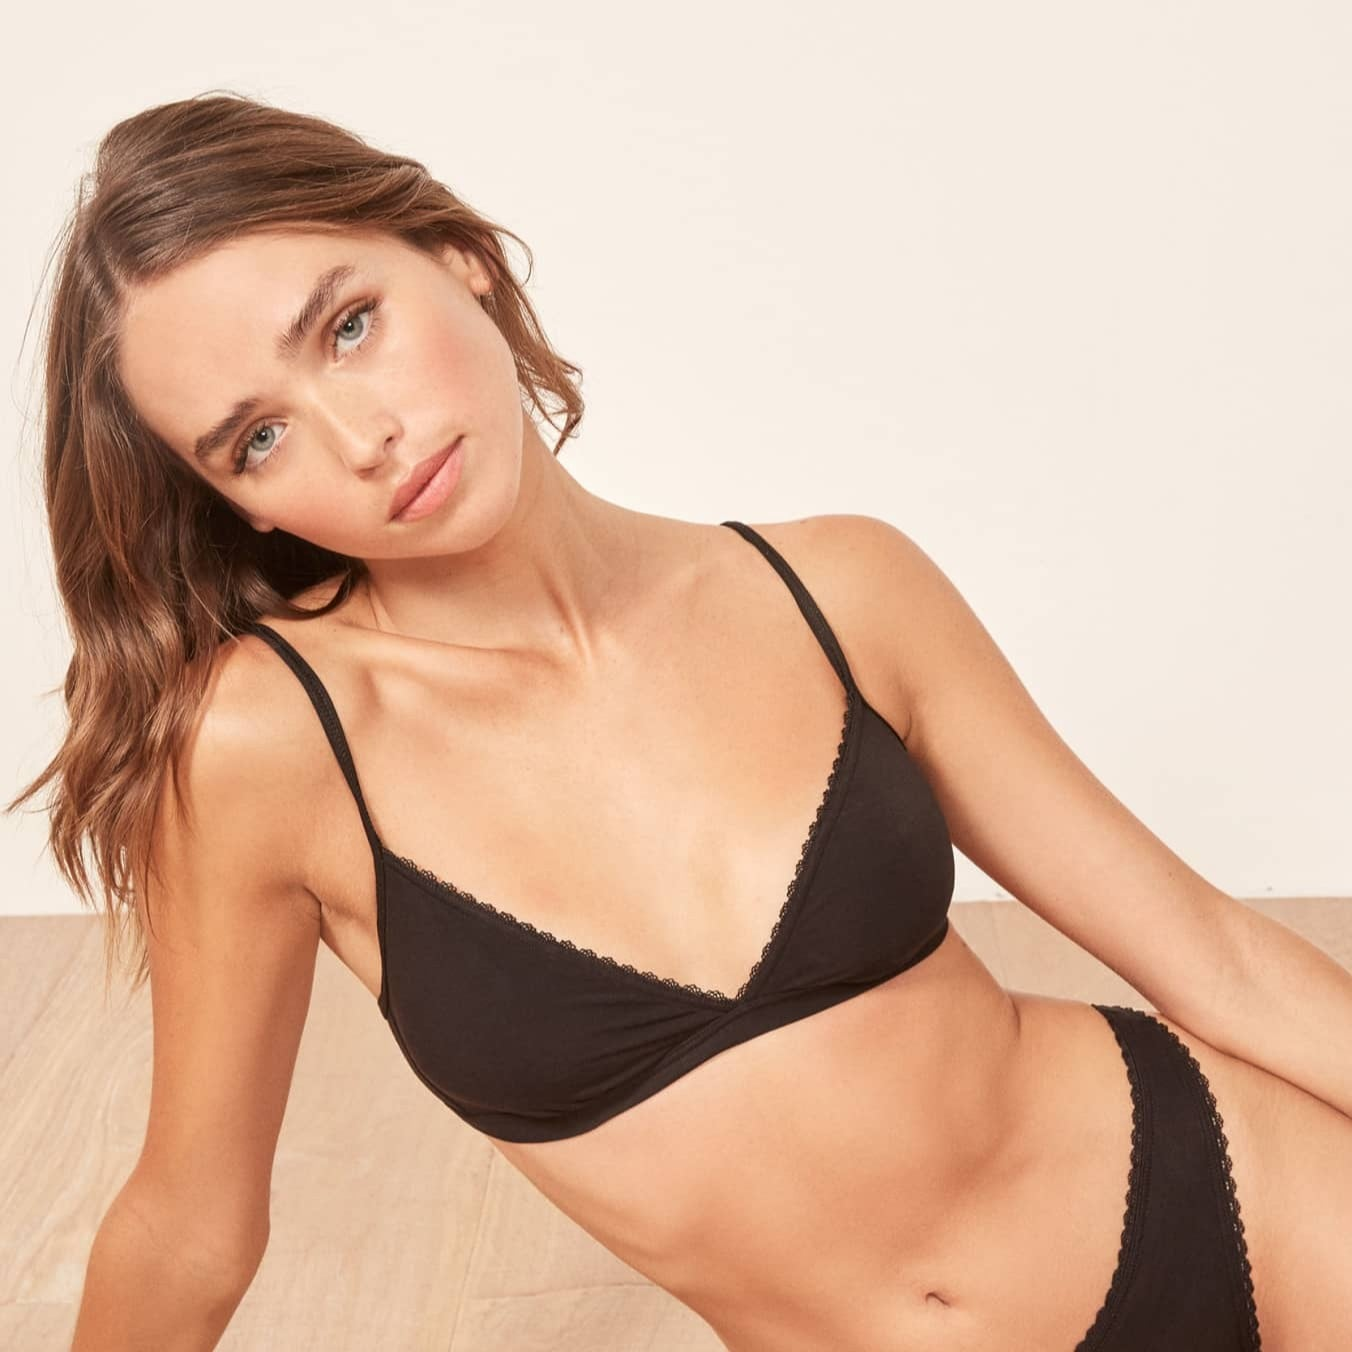 a69cf38fcb1a70 Best Bras For Small Bust 2019